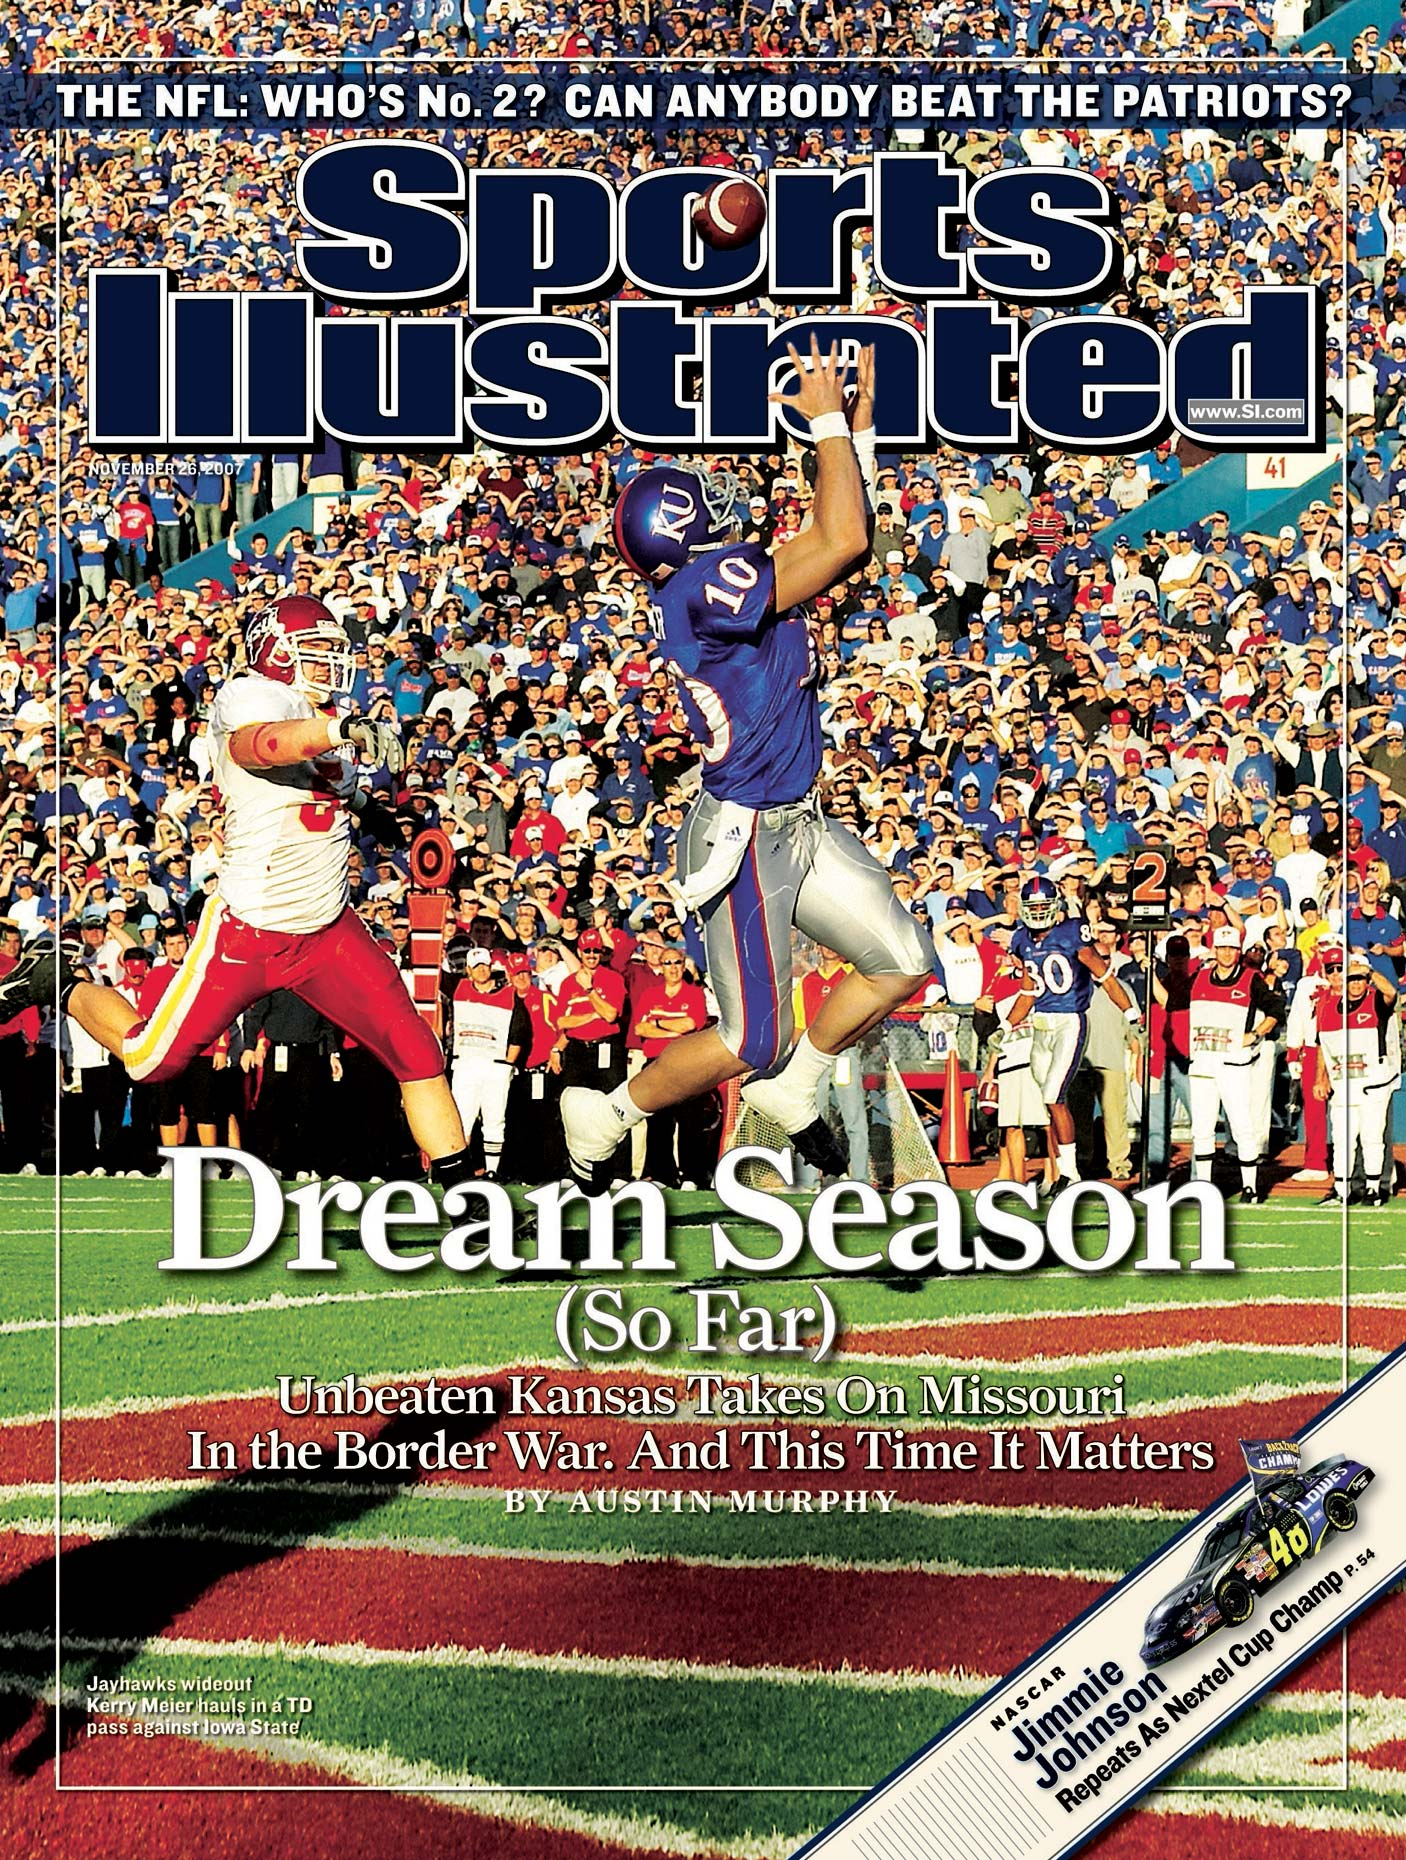 Kerry Meier of the University of Kansas on the cover of Sports Illustrated.